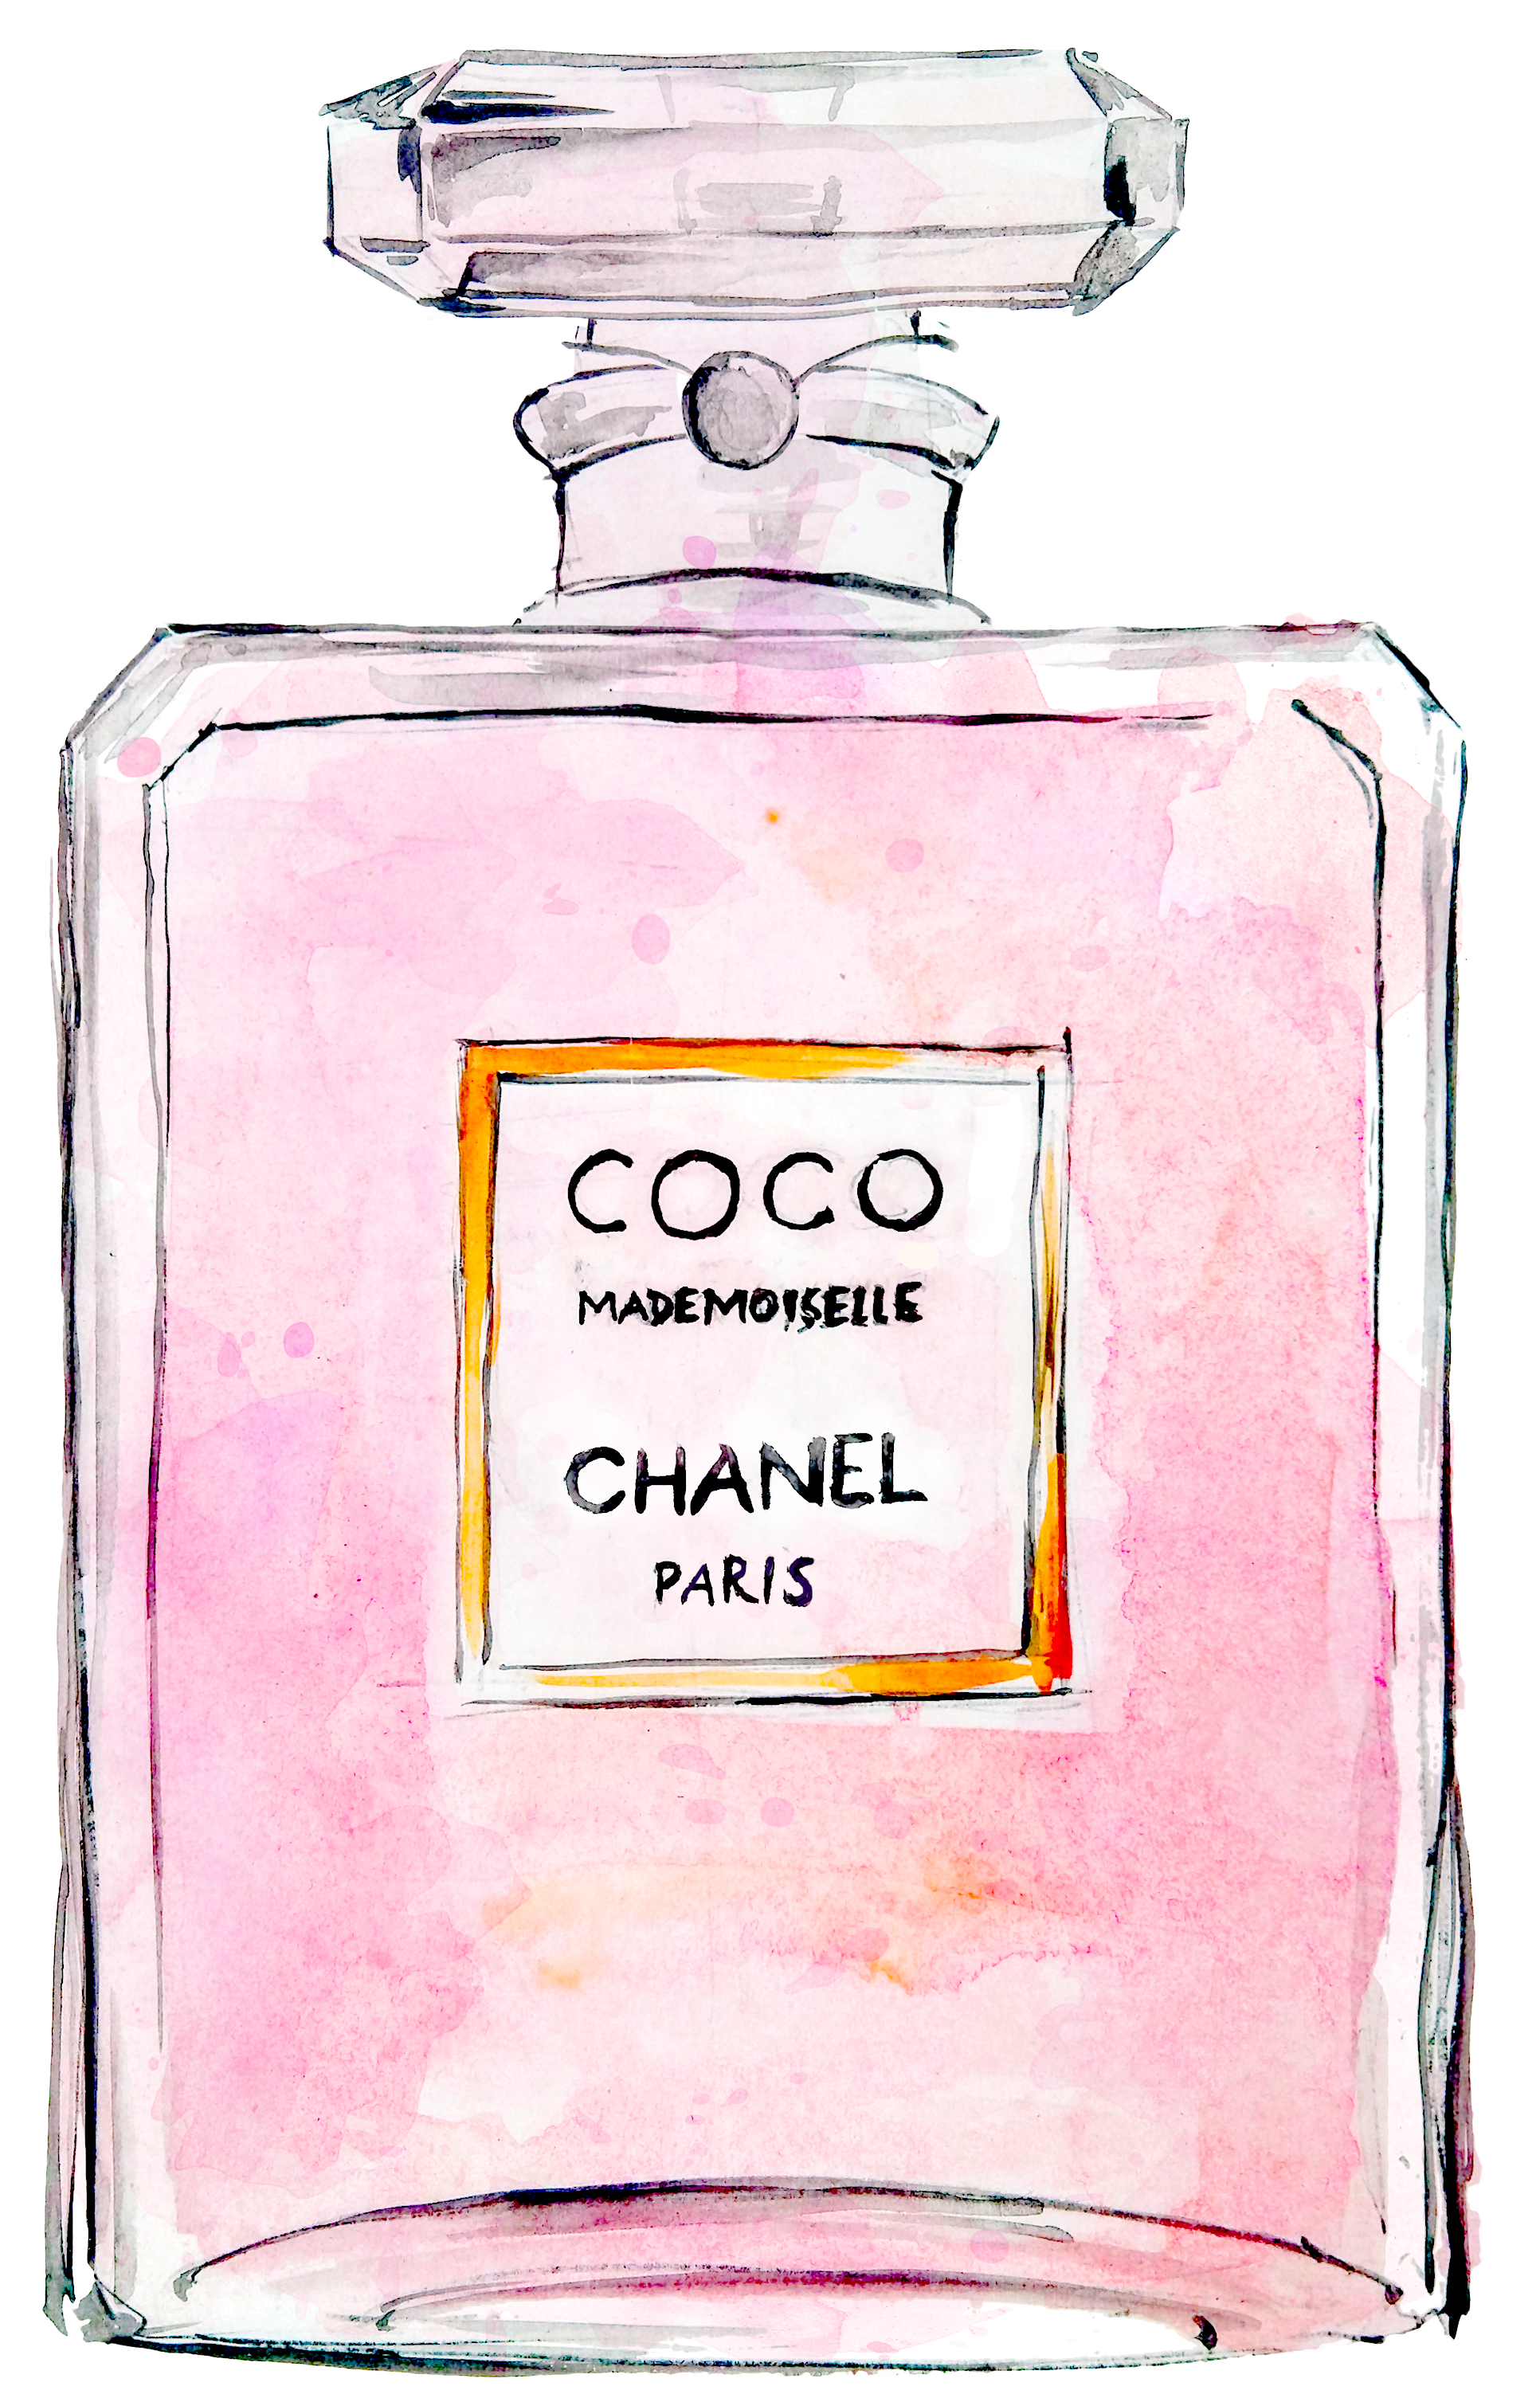 Chanel drawing coco mademoiselle. Perfume no chanelcoco transprent